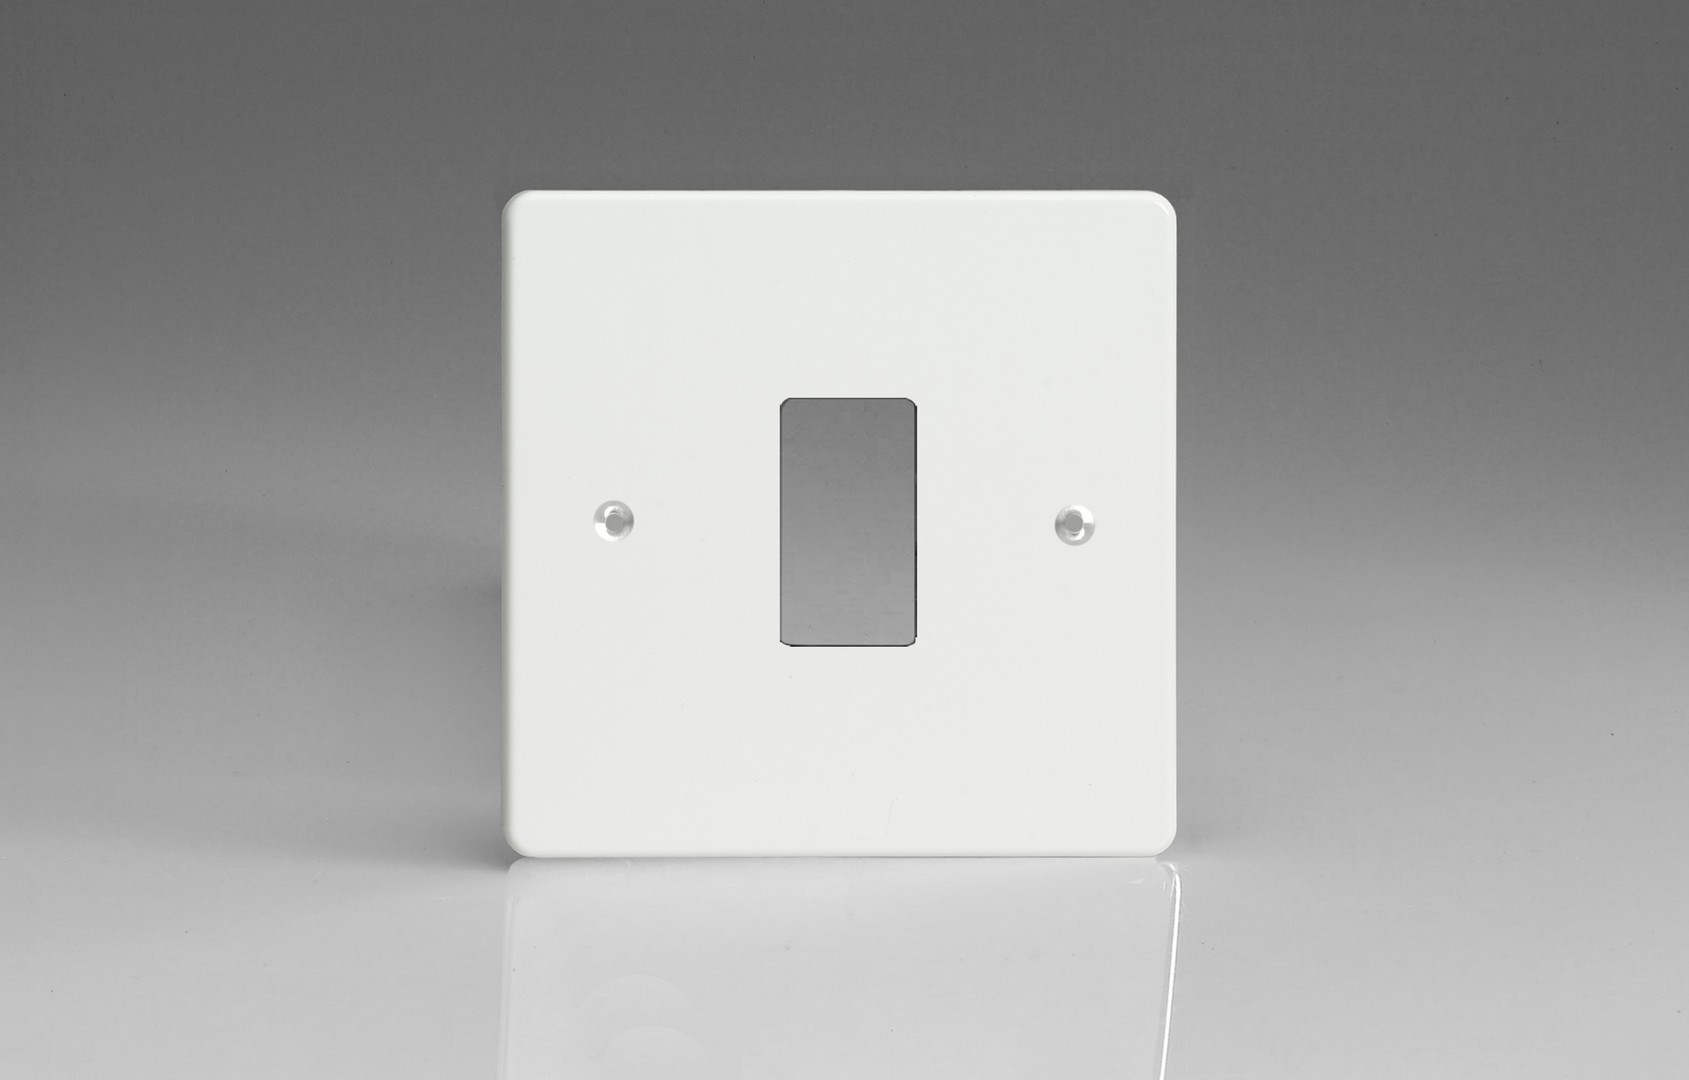 Switch Faceplate Premium White 1Gang Grid Plate Single Plate Faceplate  Switch